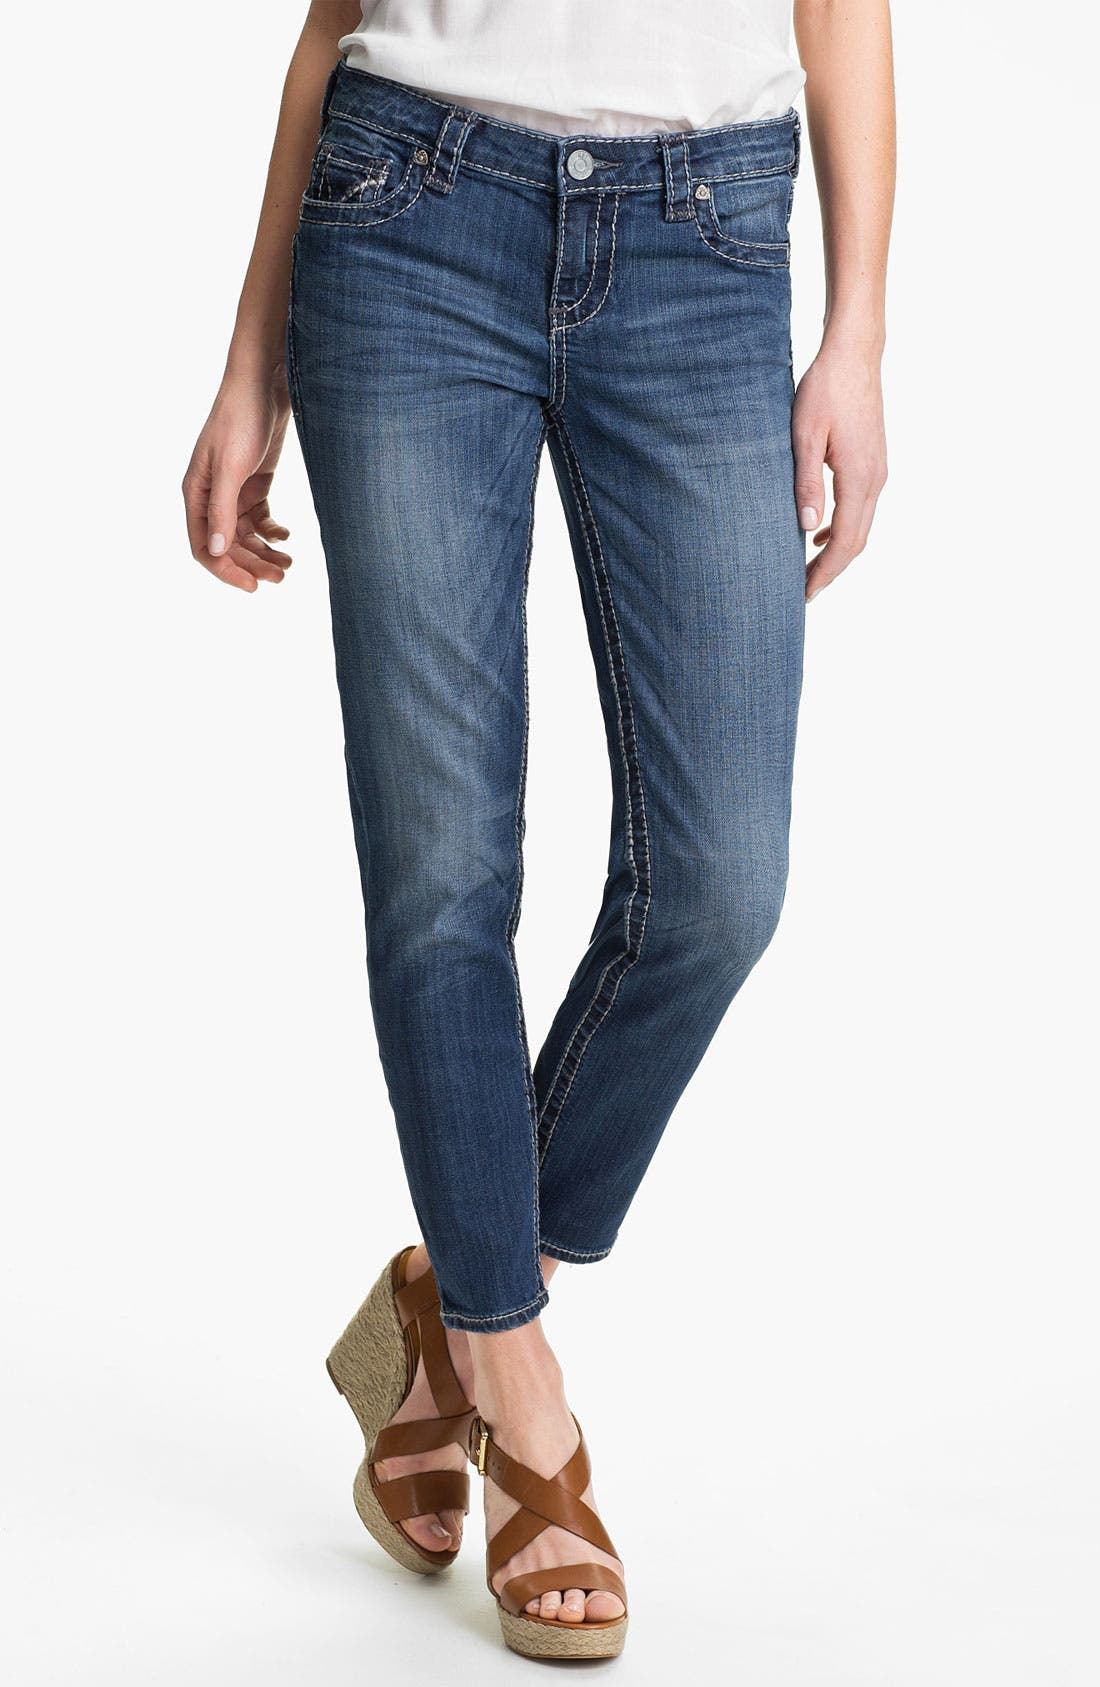 Alternate Image 1 Selected - KUT from the Kloth 'Brigitte' Skinny Ankle Jeans (Exceptional)